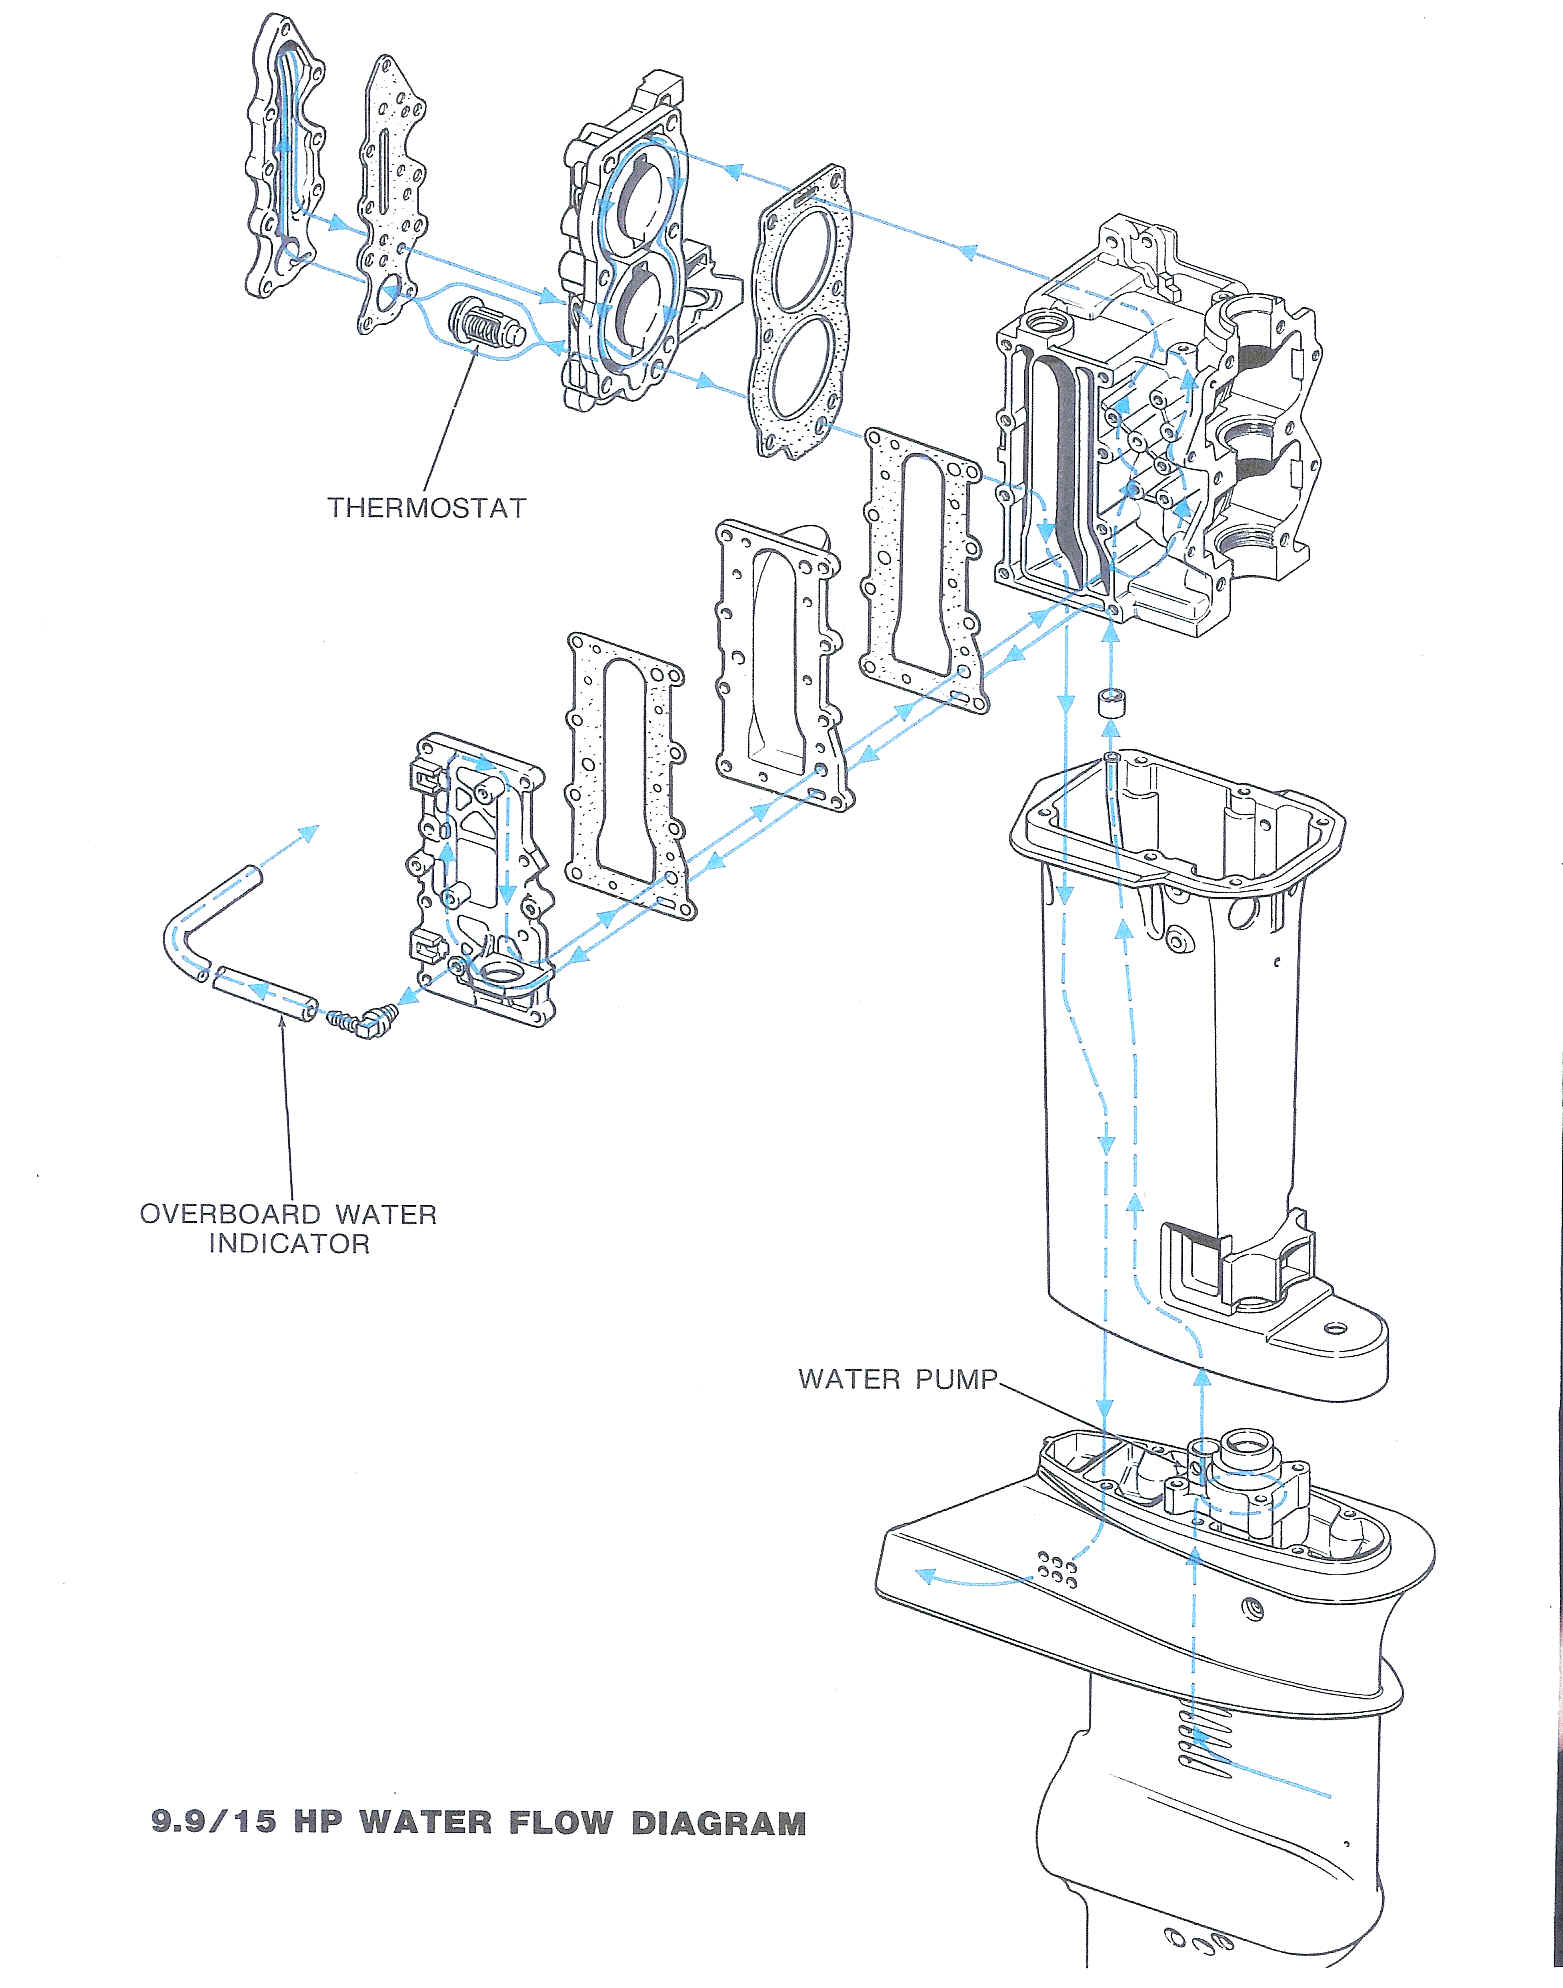 Indak Ignition Switch Wiring Diagram Source Saab 900 Spark Plug As Well Us3497644 Also Bvrewc14329 Together With Wire